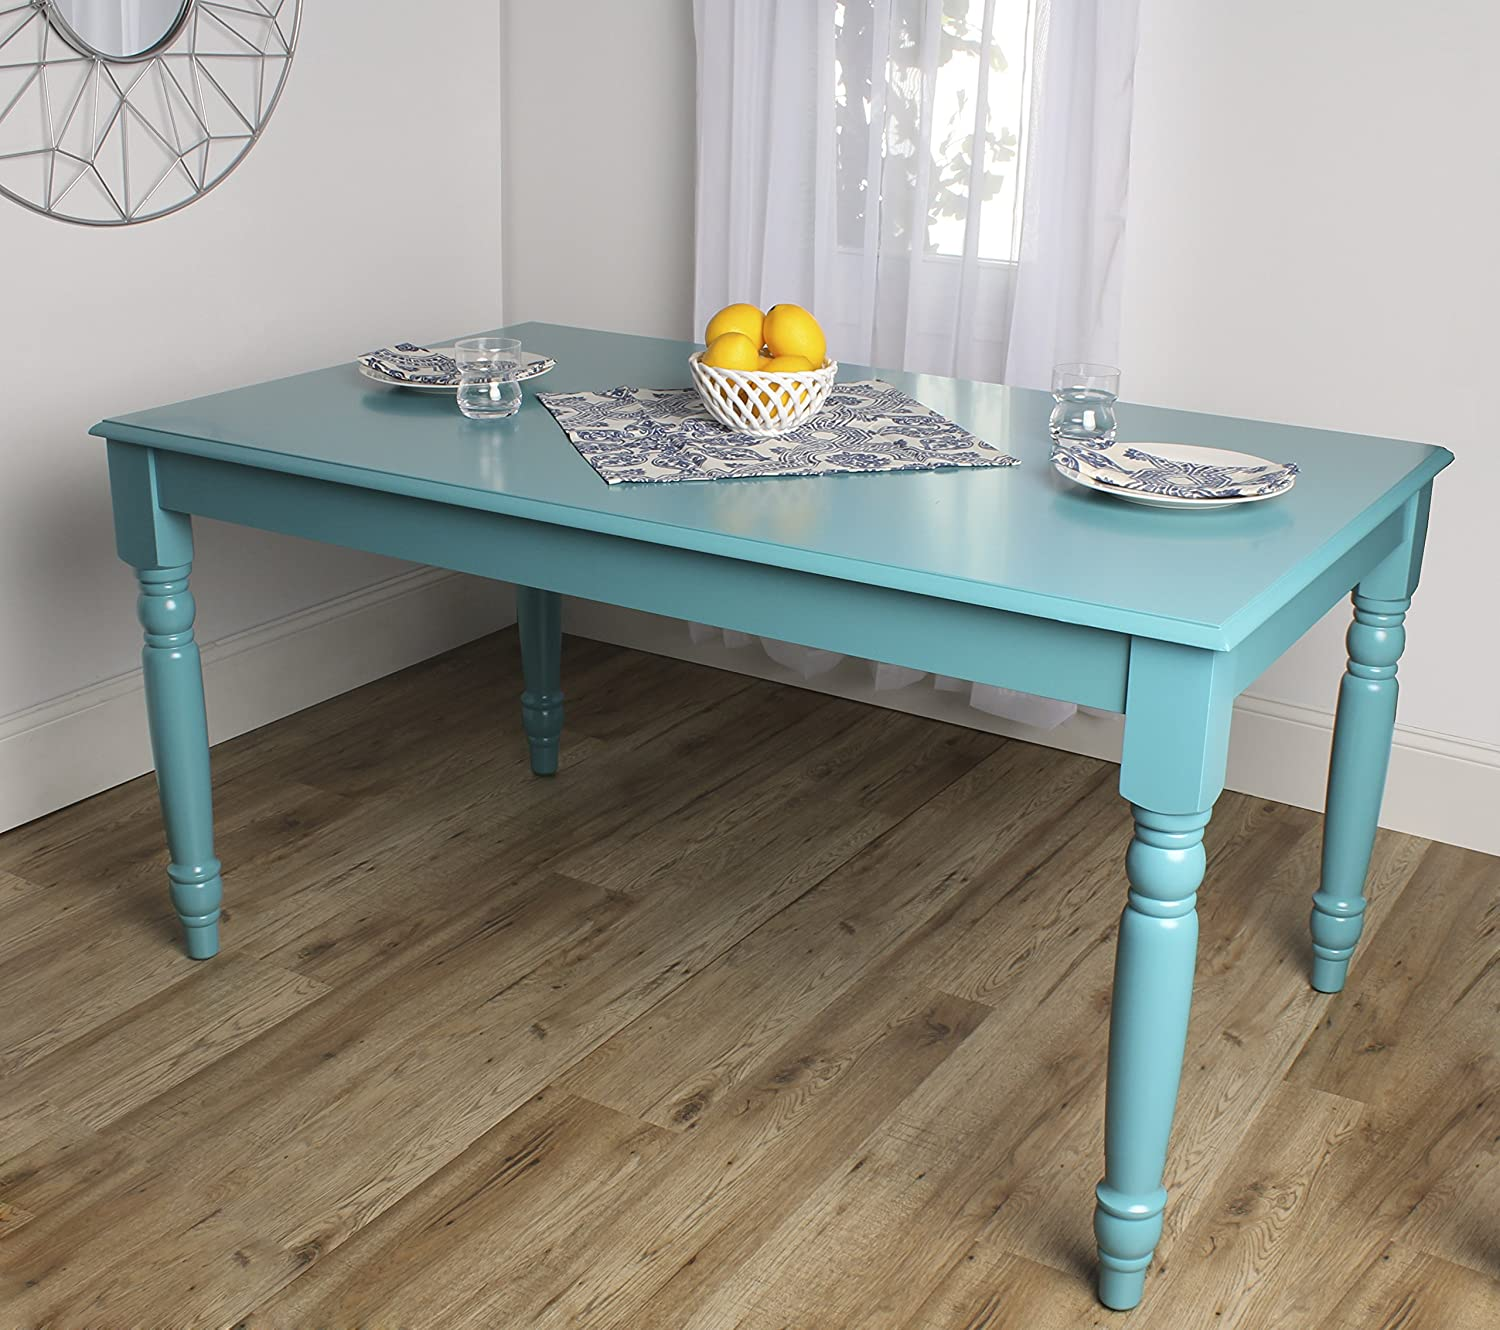 Amazon.com - Kate and Laurel Turin Wood Dining Table with Farmhouse ...